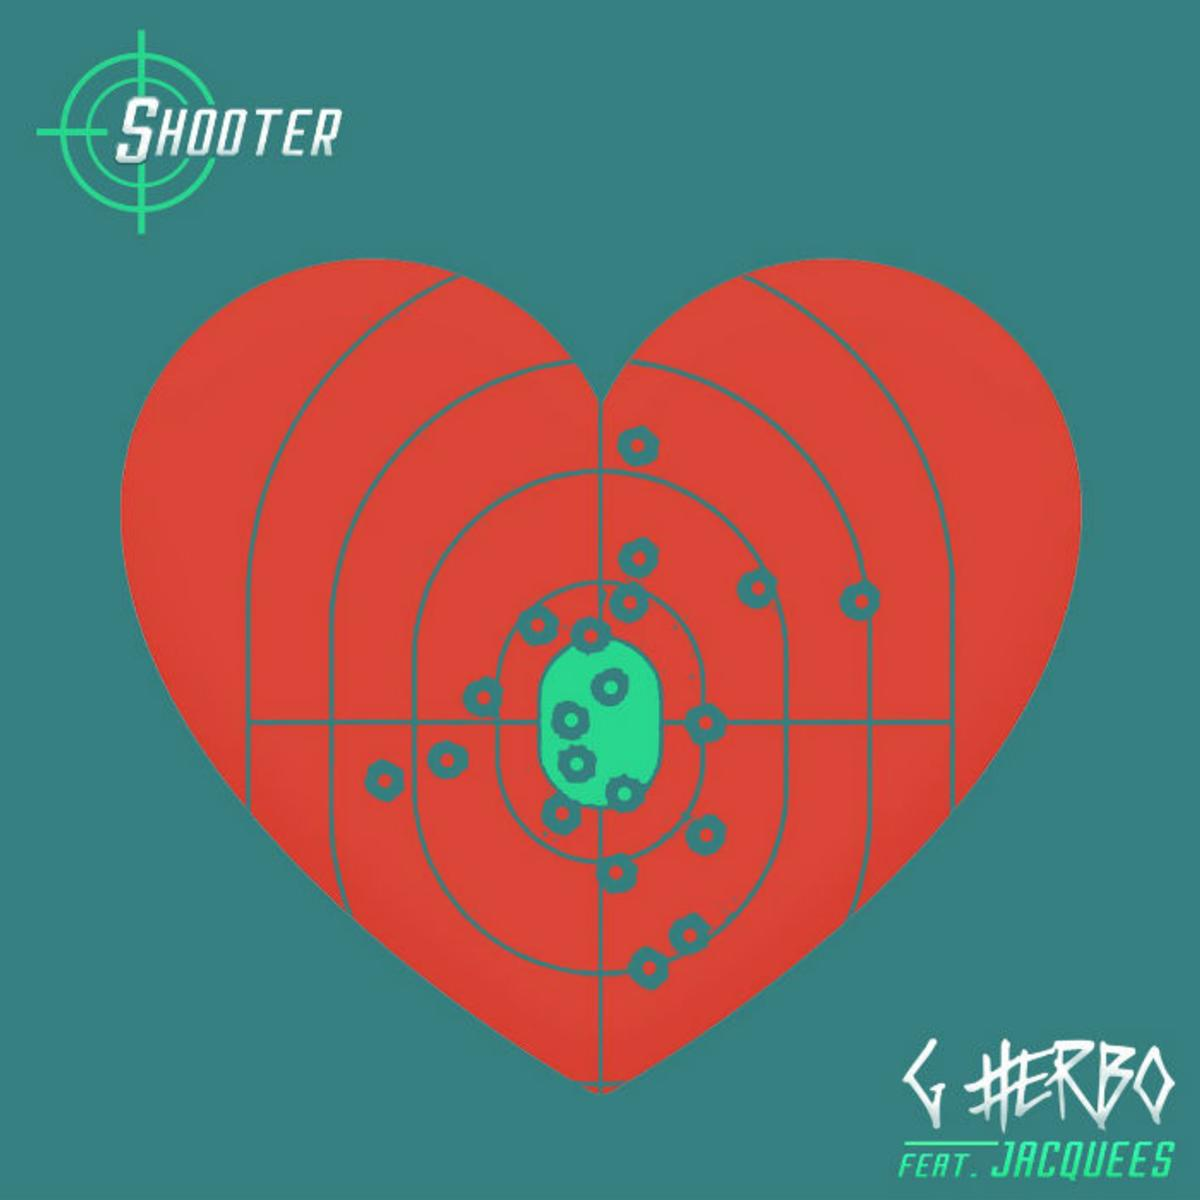 G Herbo - Shooter (feat. Jacquees)